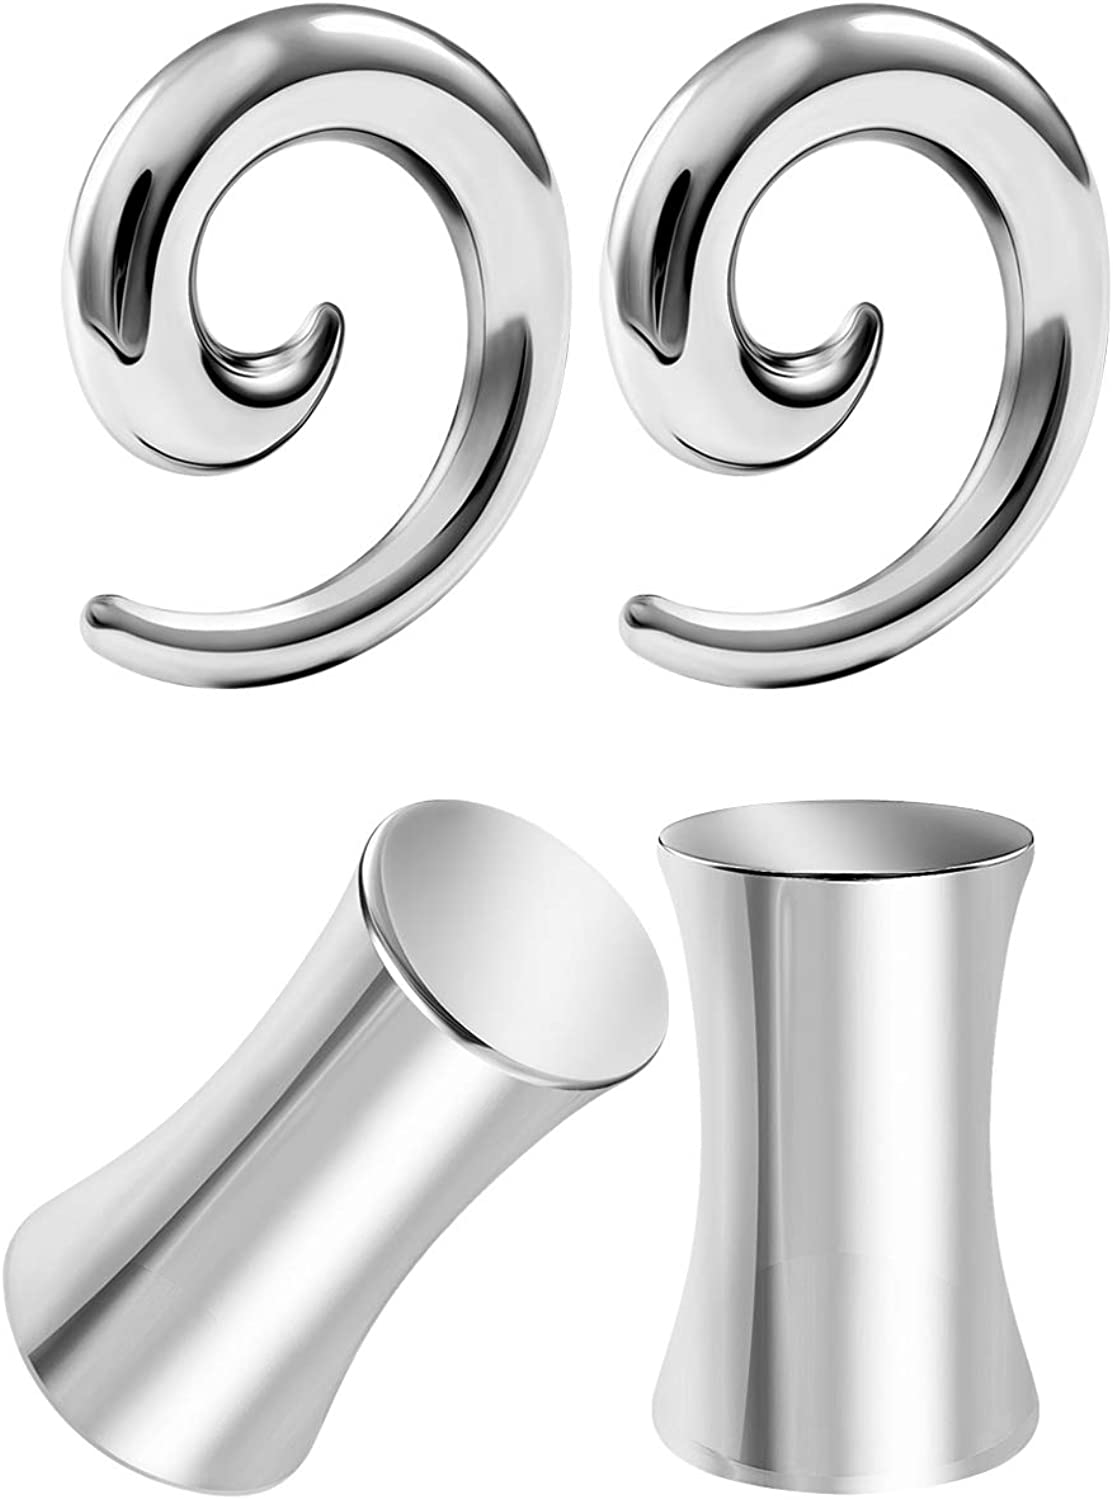 BIG GAUGES 2 Pairs 316L Surgical Steel Spiral Taper Expander Solid Flesh Piercing Jewelry Ear Stretching Polished Earring Lobe Plugs